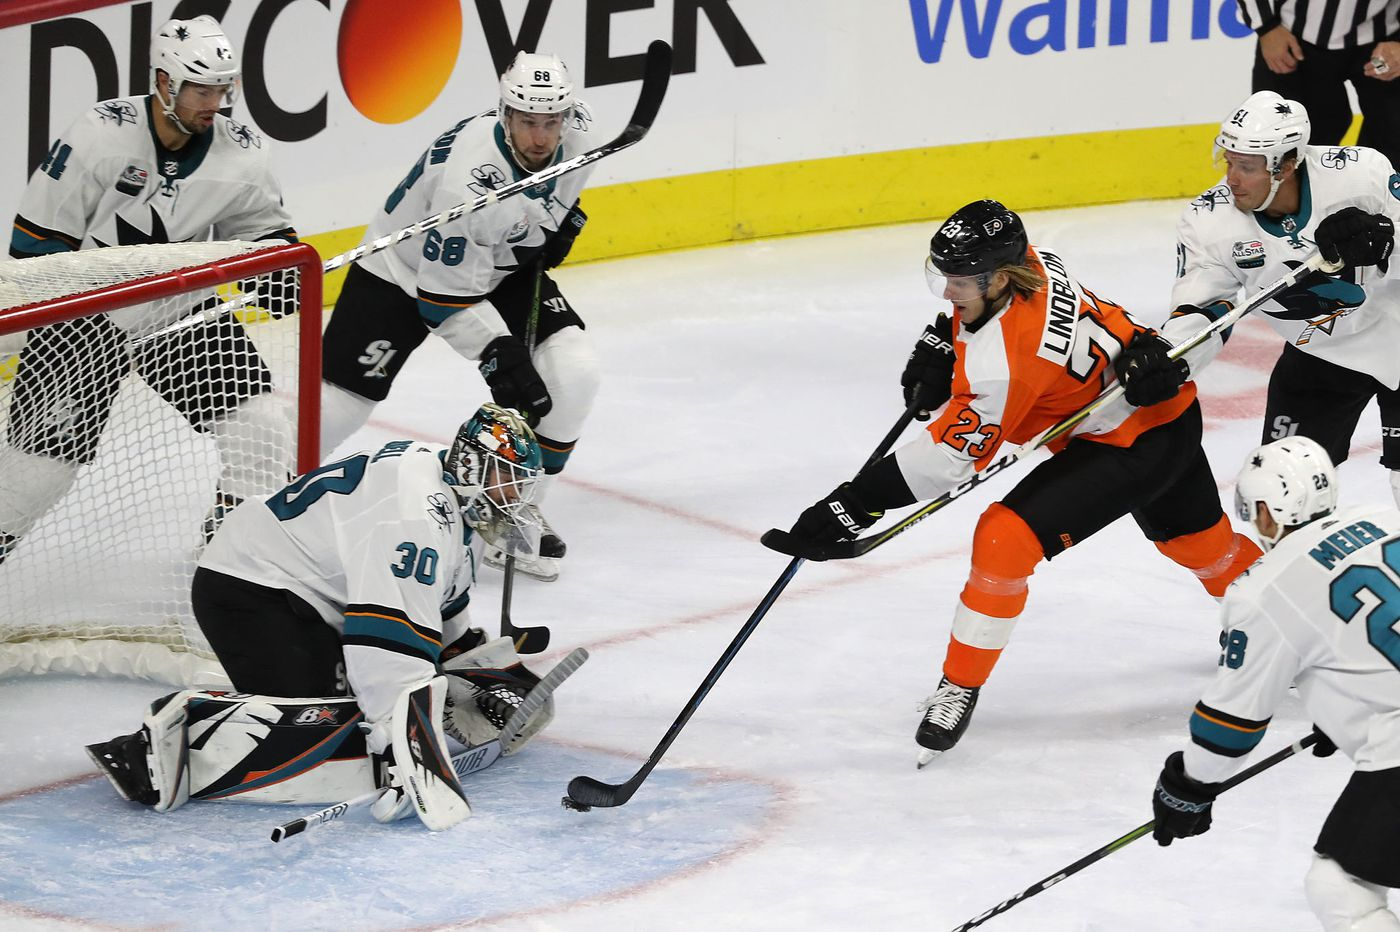 In youngsters Oskar Lindblom and Mikhail Vorobyev, Flyers have to hope help is on the way | Mike Sielski